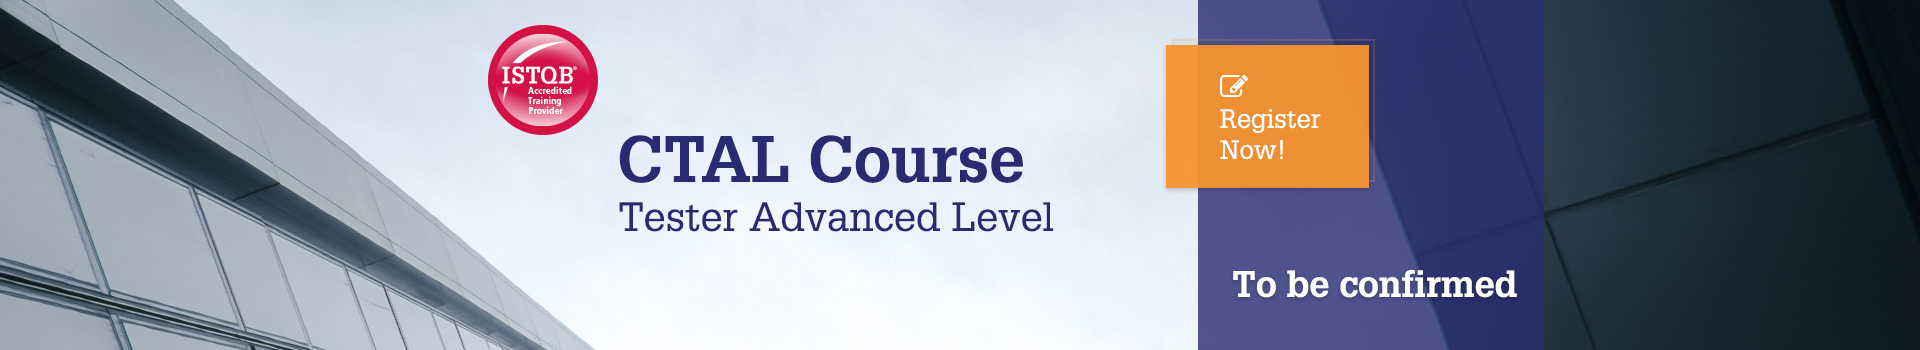 CTAL Course Tester Advanced Level